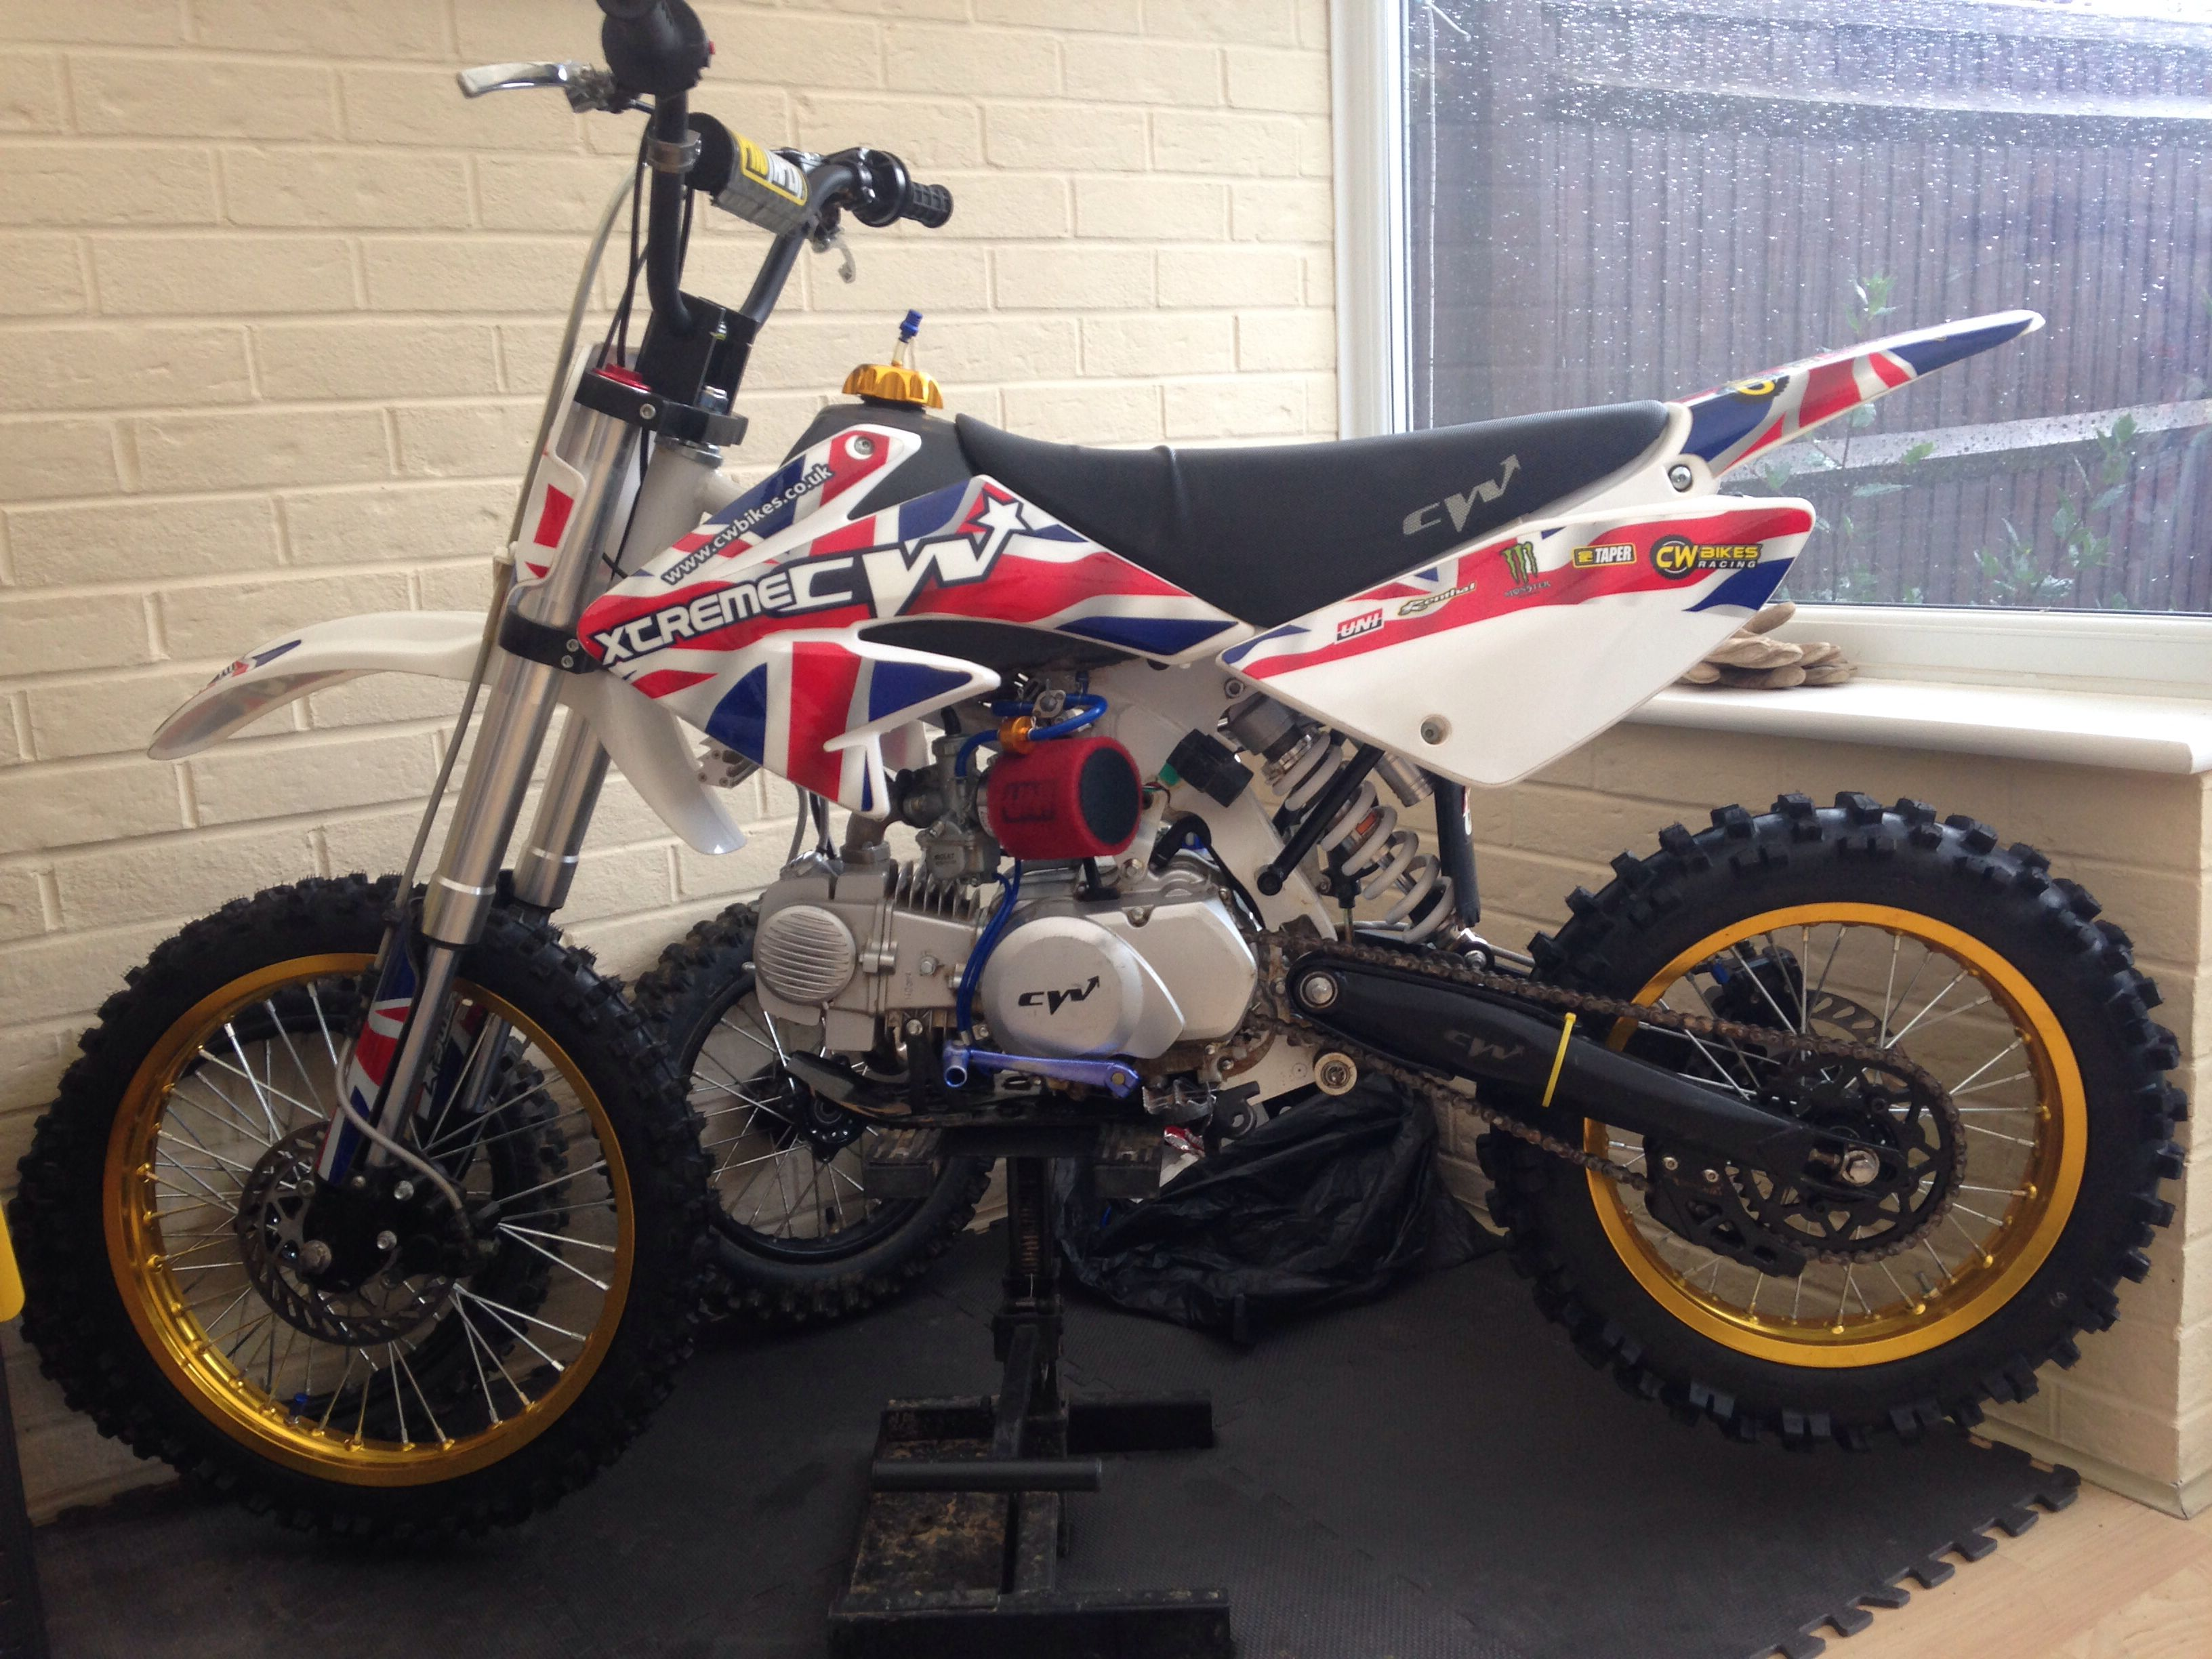 medium resolution of cw bikes 140f pitbike fuel filter and lines upgrade big wheels still need a proper test